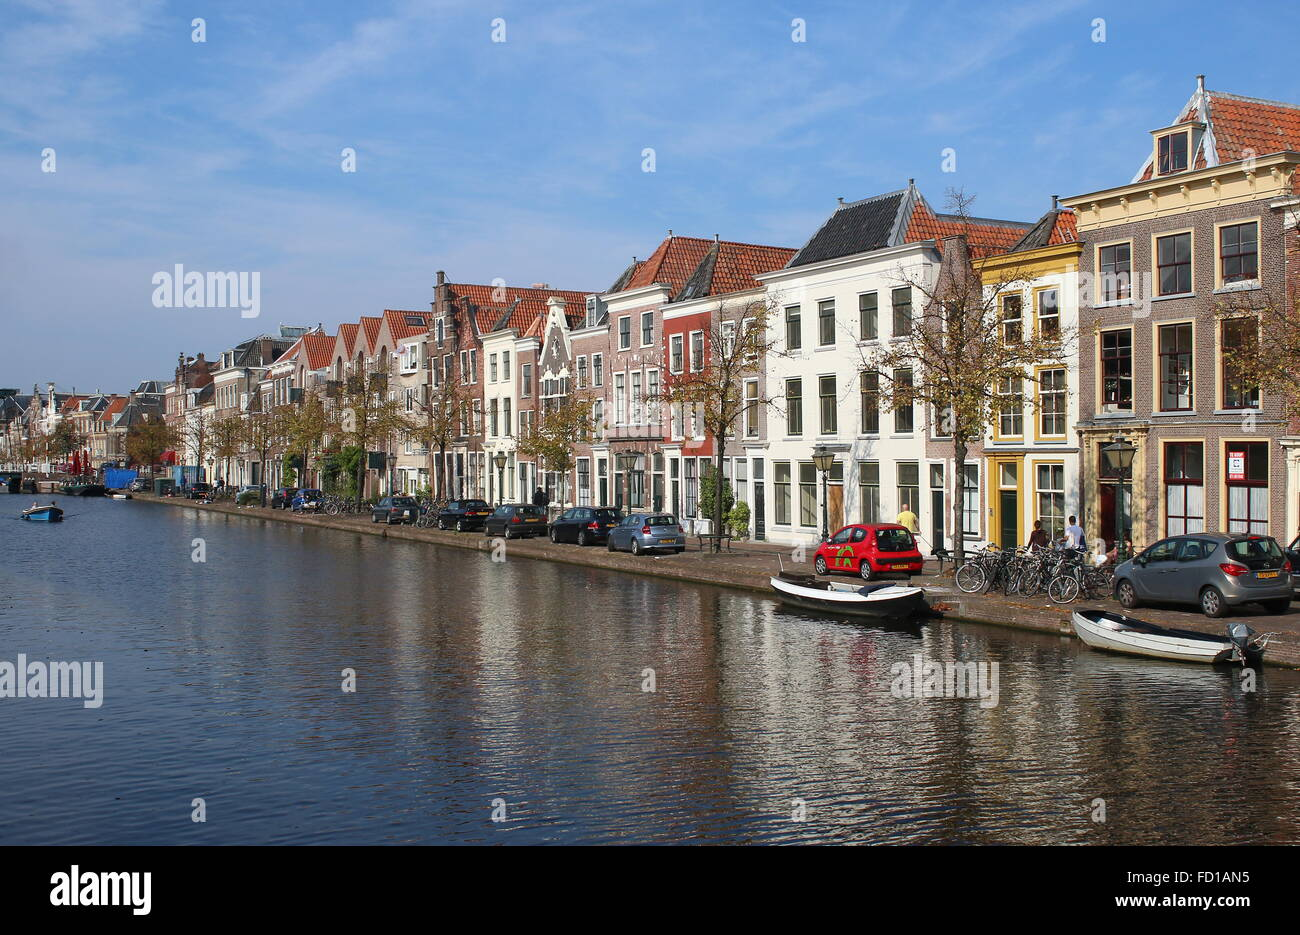 Medieval Oude Singel and Oude Vest canal in the historical centre of Leiden, The Netherlands - Stock Image